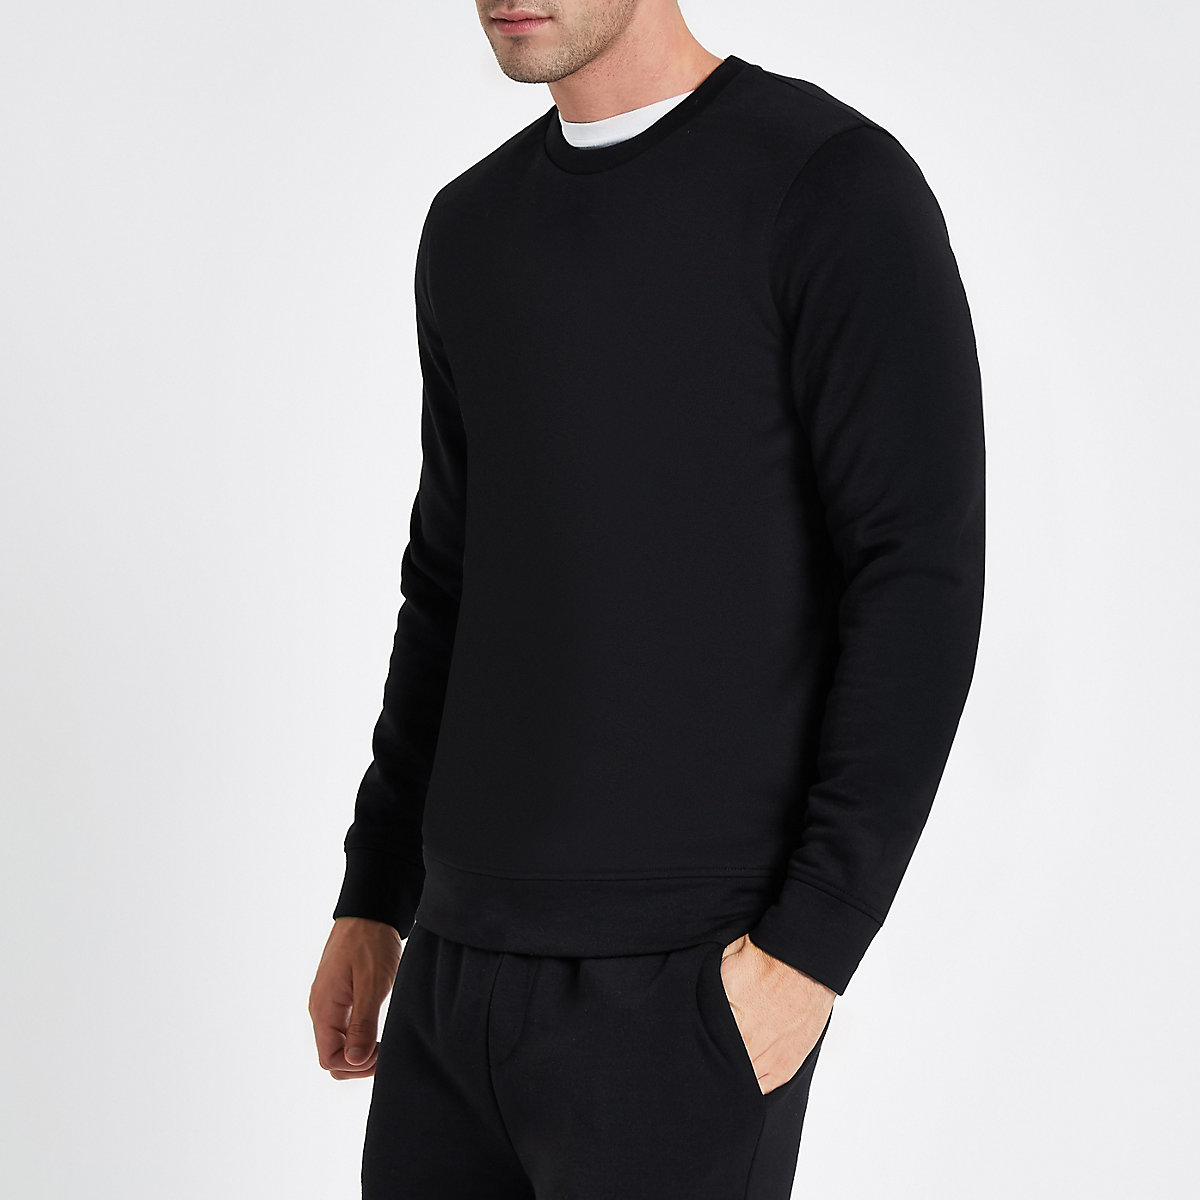 Black crew neck long sleeve sweatshirt